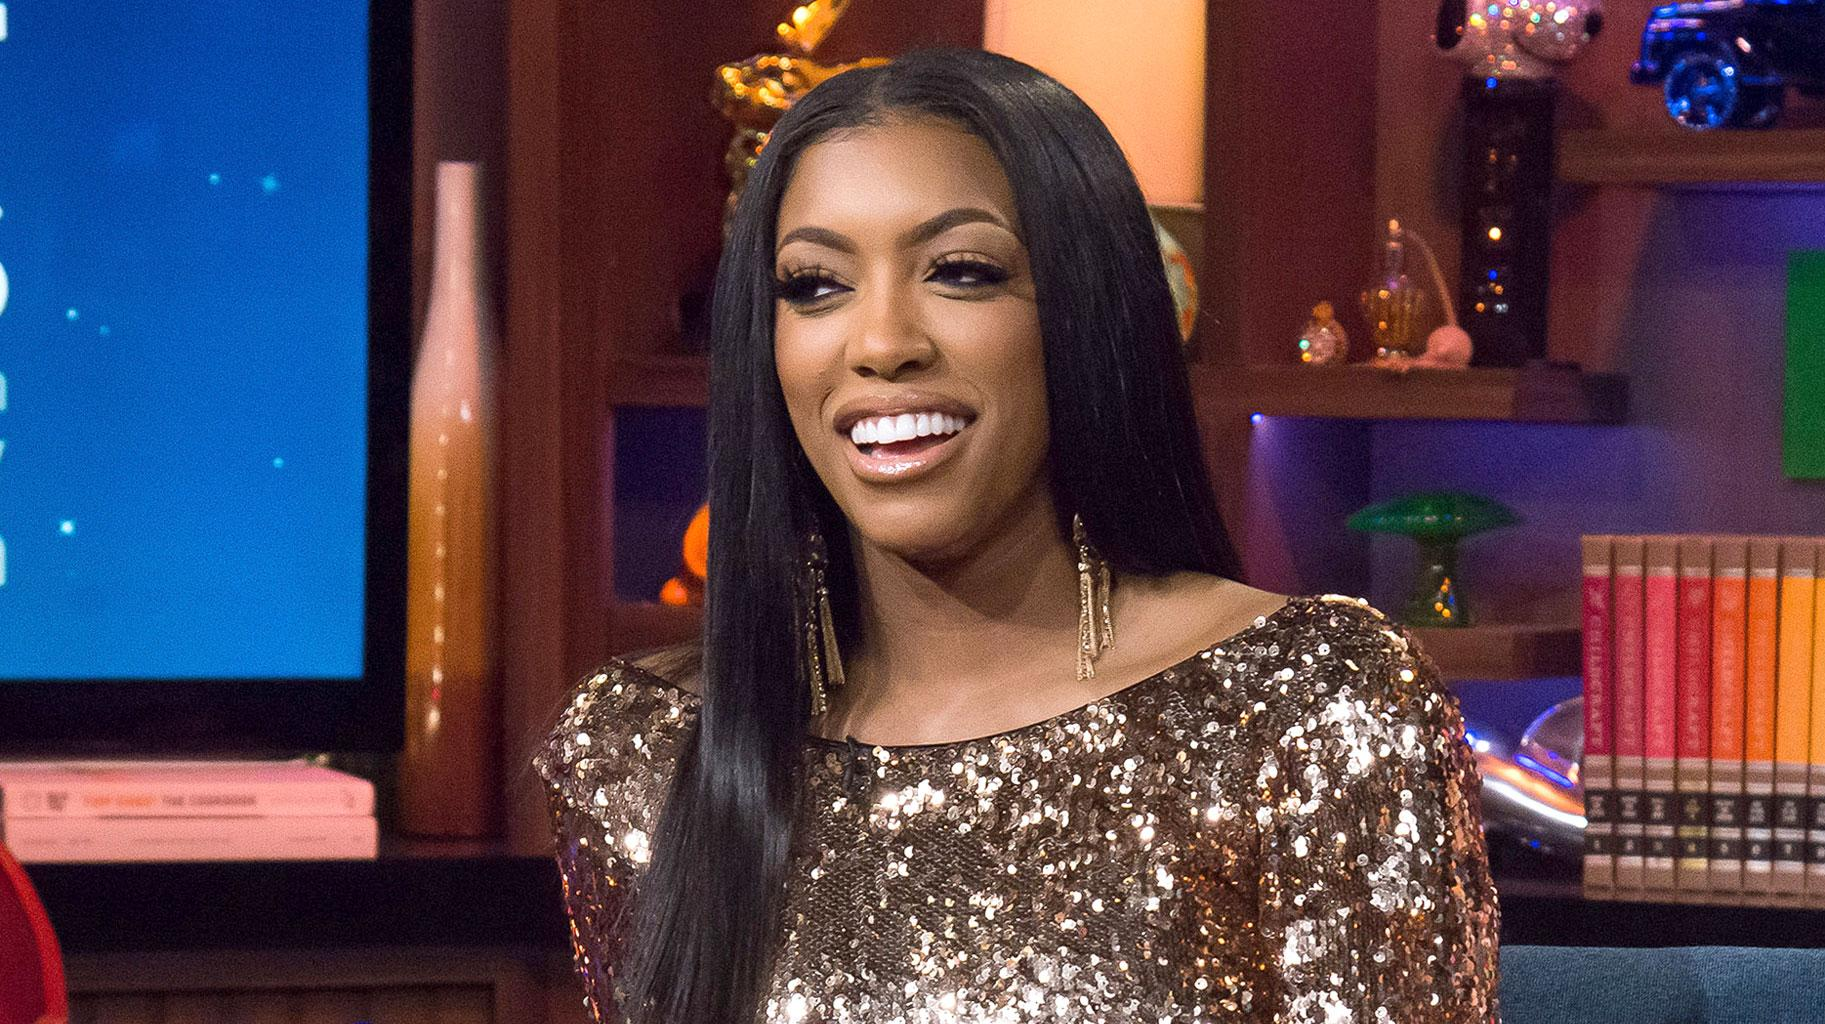 Porsha Williams Shares A Throwback Photo Since She Was A Baby And Fans Are Shocked By The Resemblance With Her Daughter, Pilar Jhena